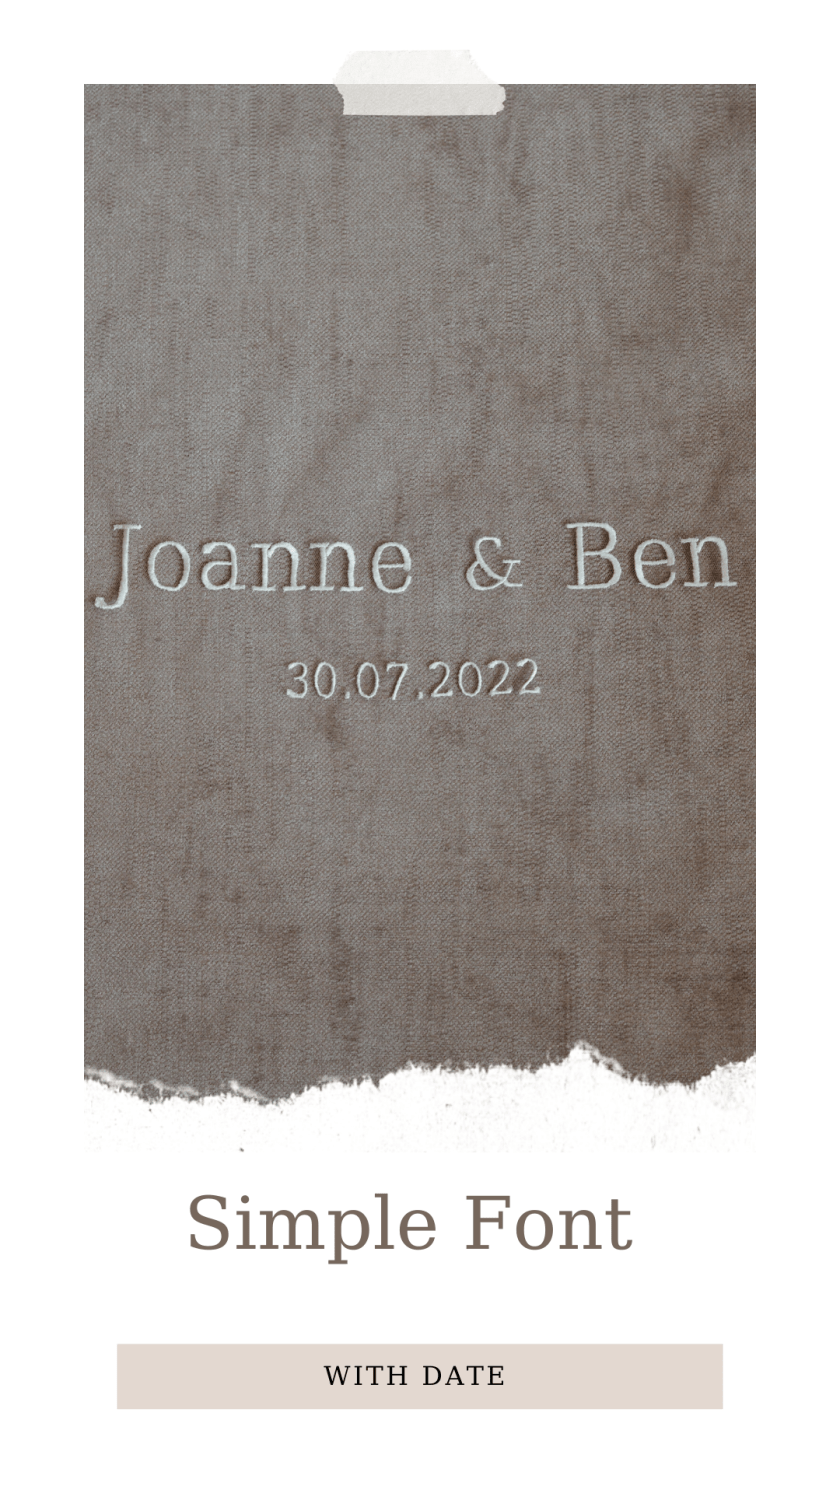 Personalised veil embroidery - names - simple font with date